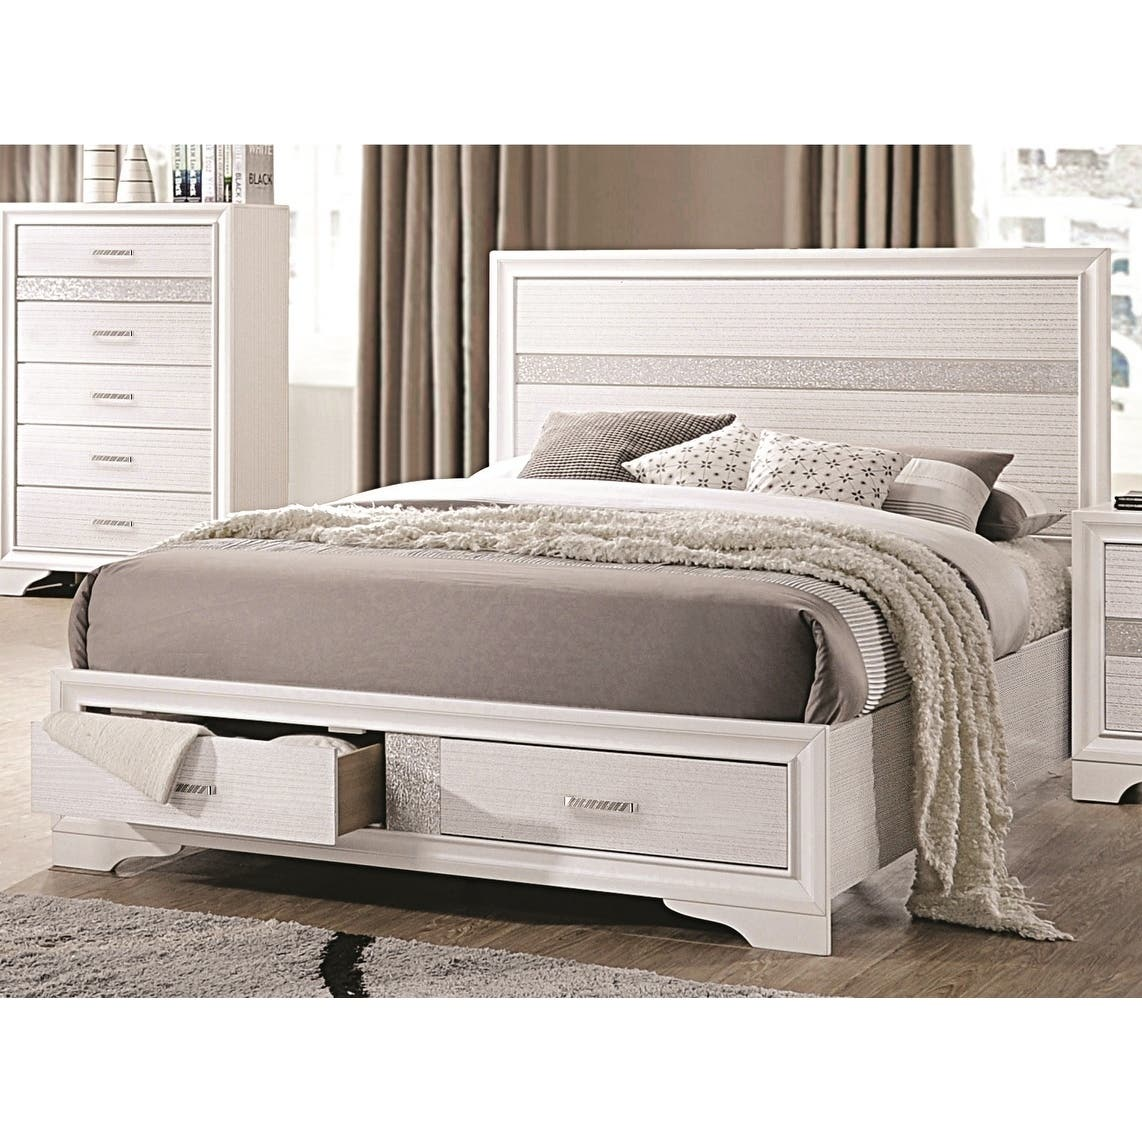 Best Place To Buy Bedroom Sets: Buy Bedroom Sets Online At Overstock